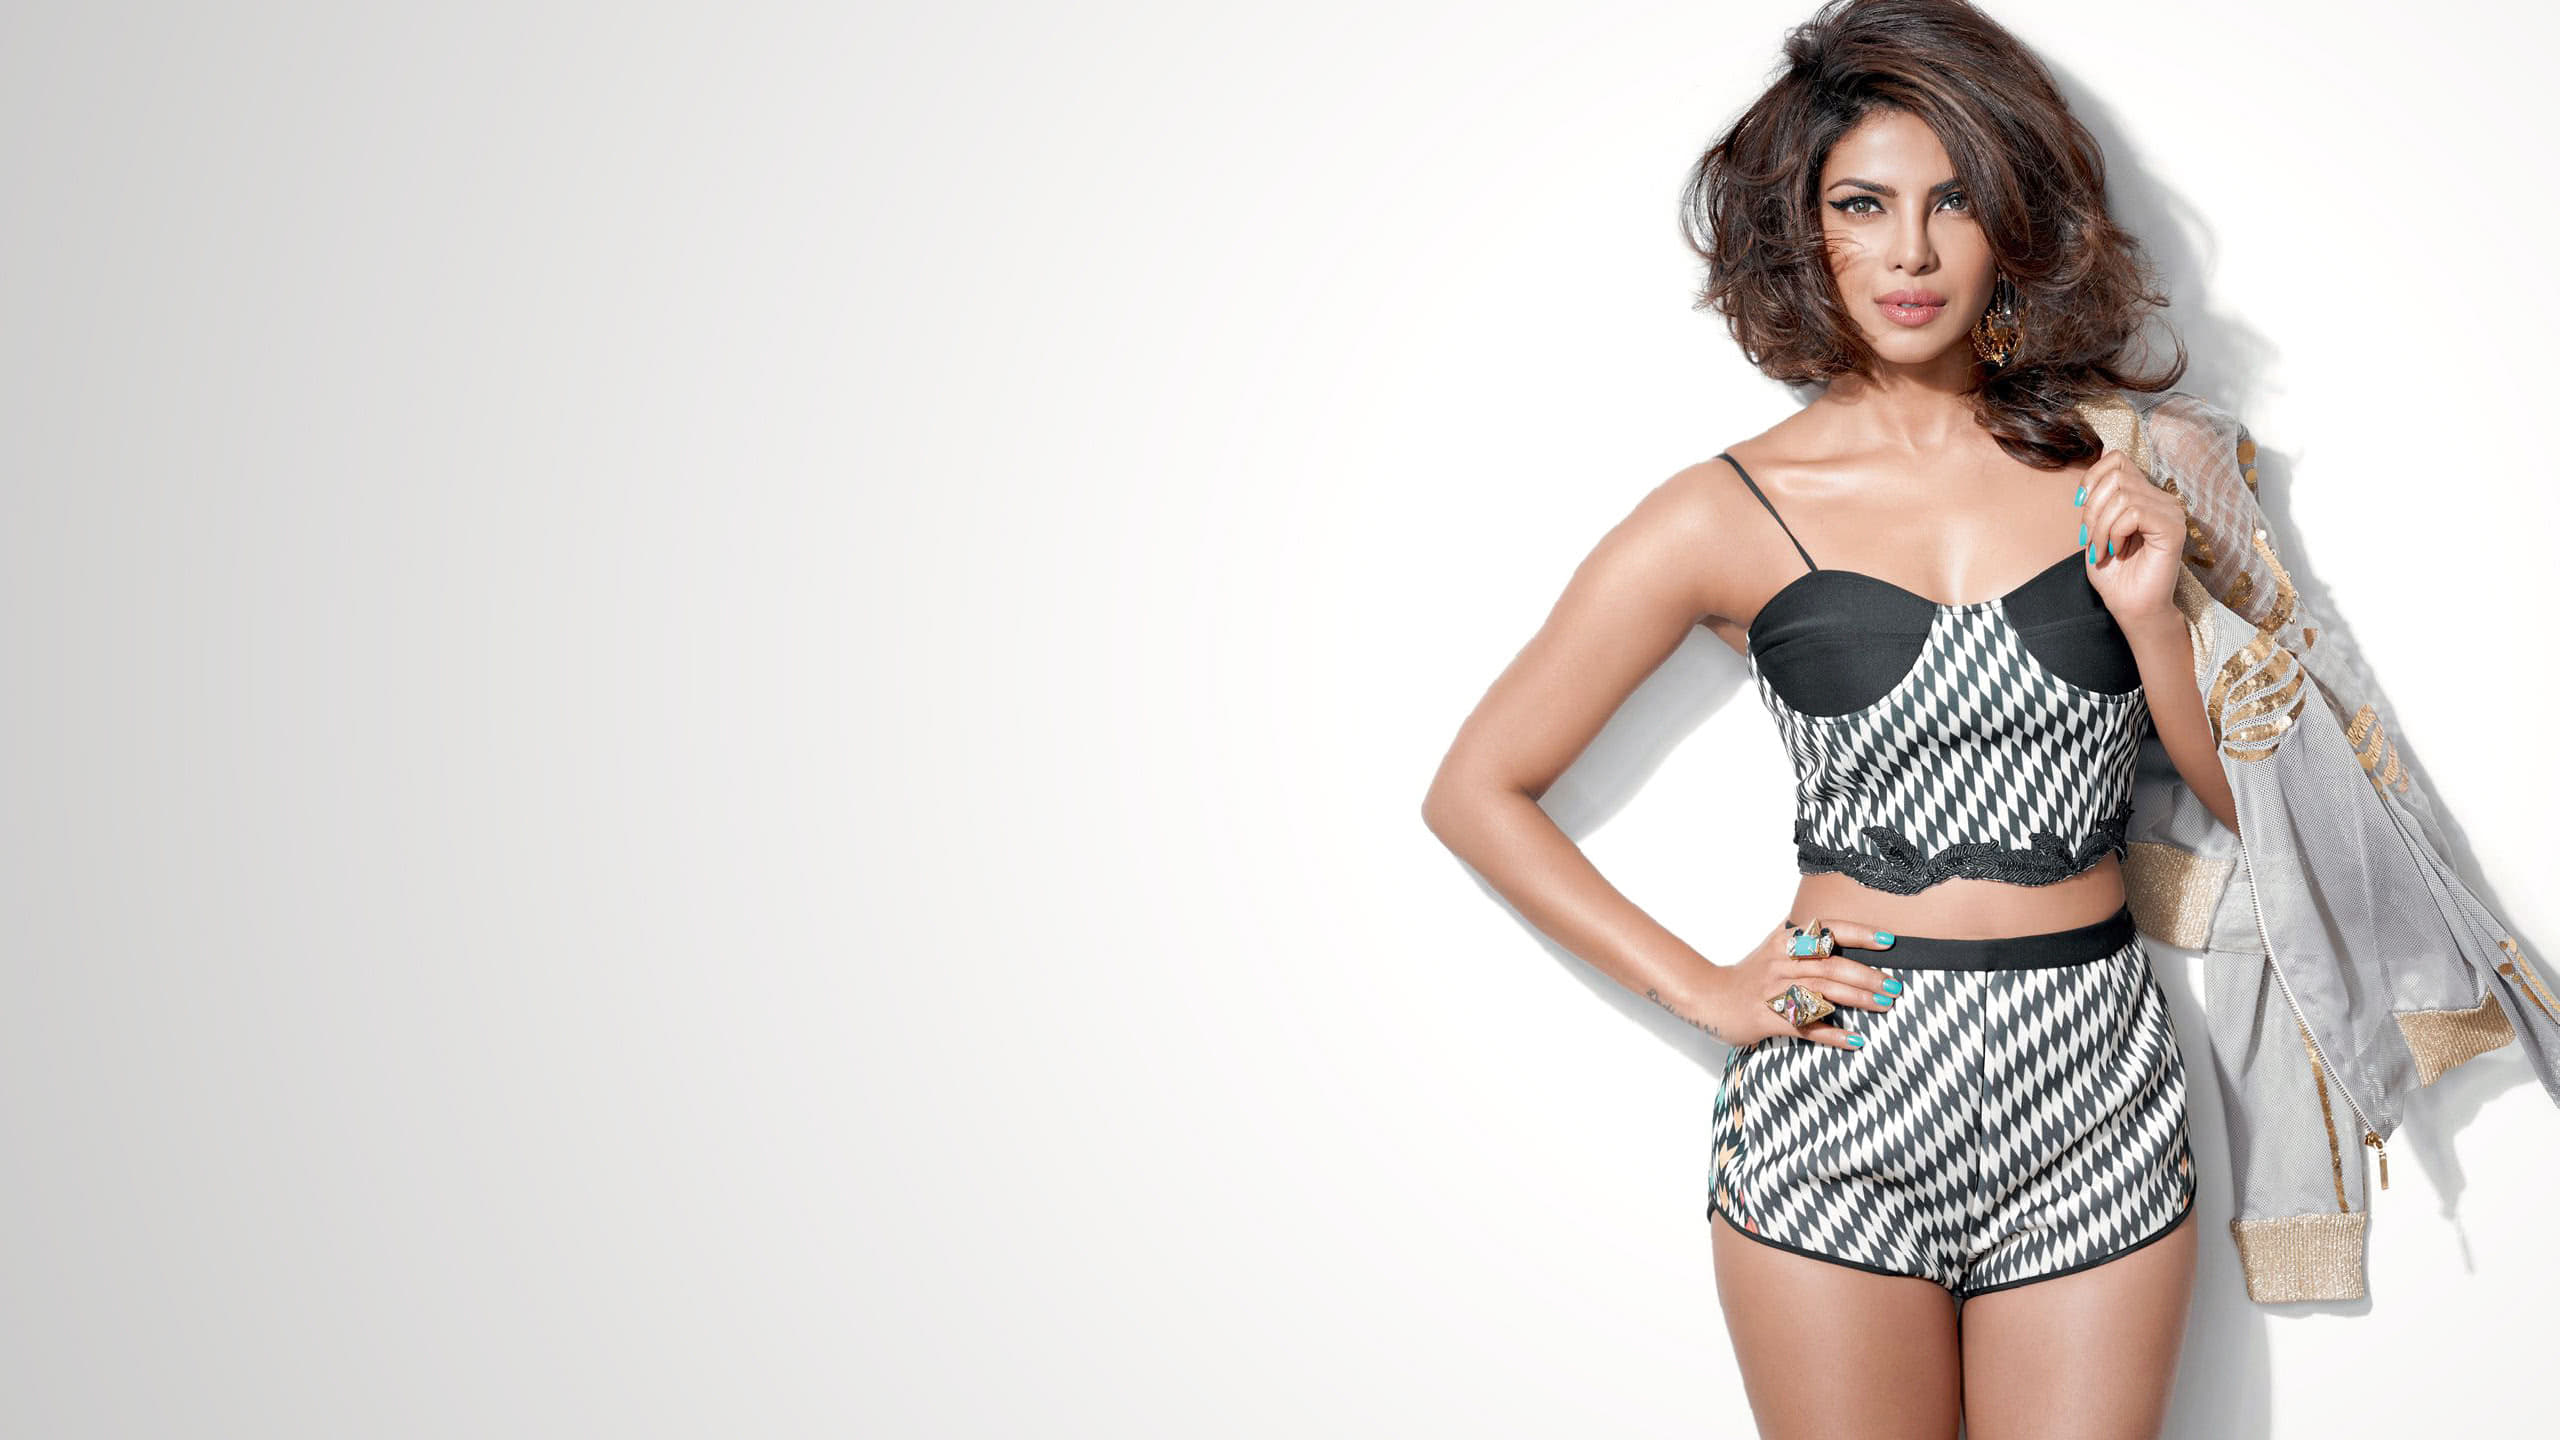 priyanka chopra photoshoot wqhd 1440p wallpaper